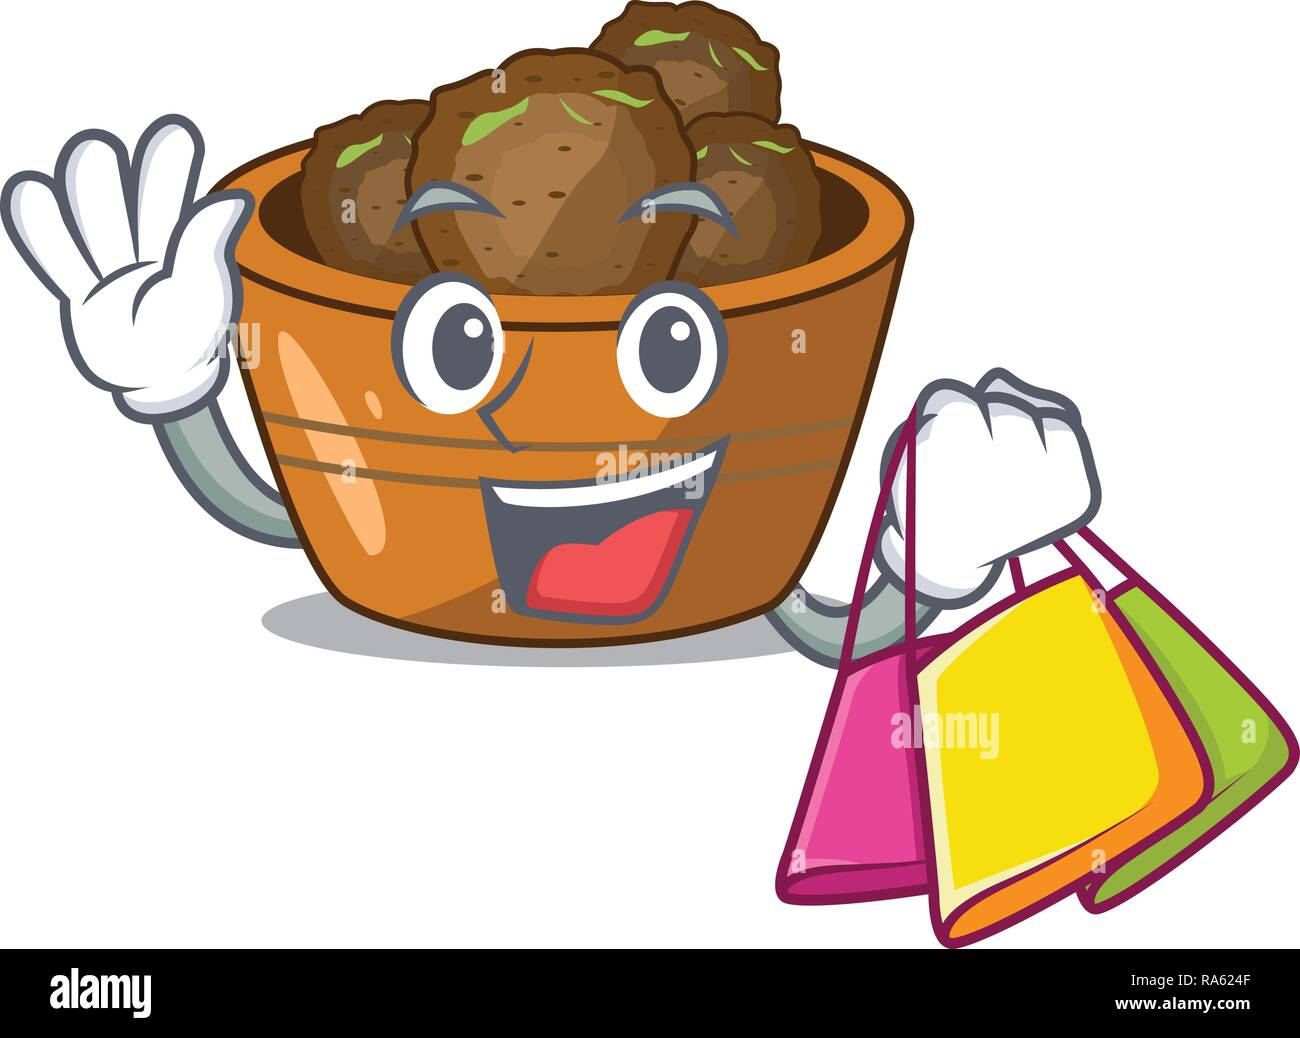 Shopping gulab jamun on the character table - Stock Vector